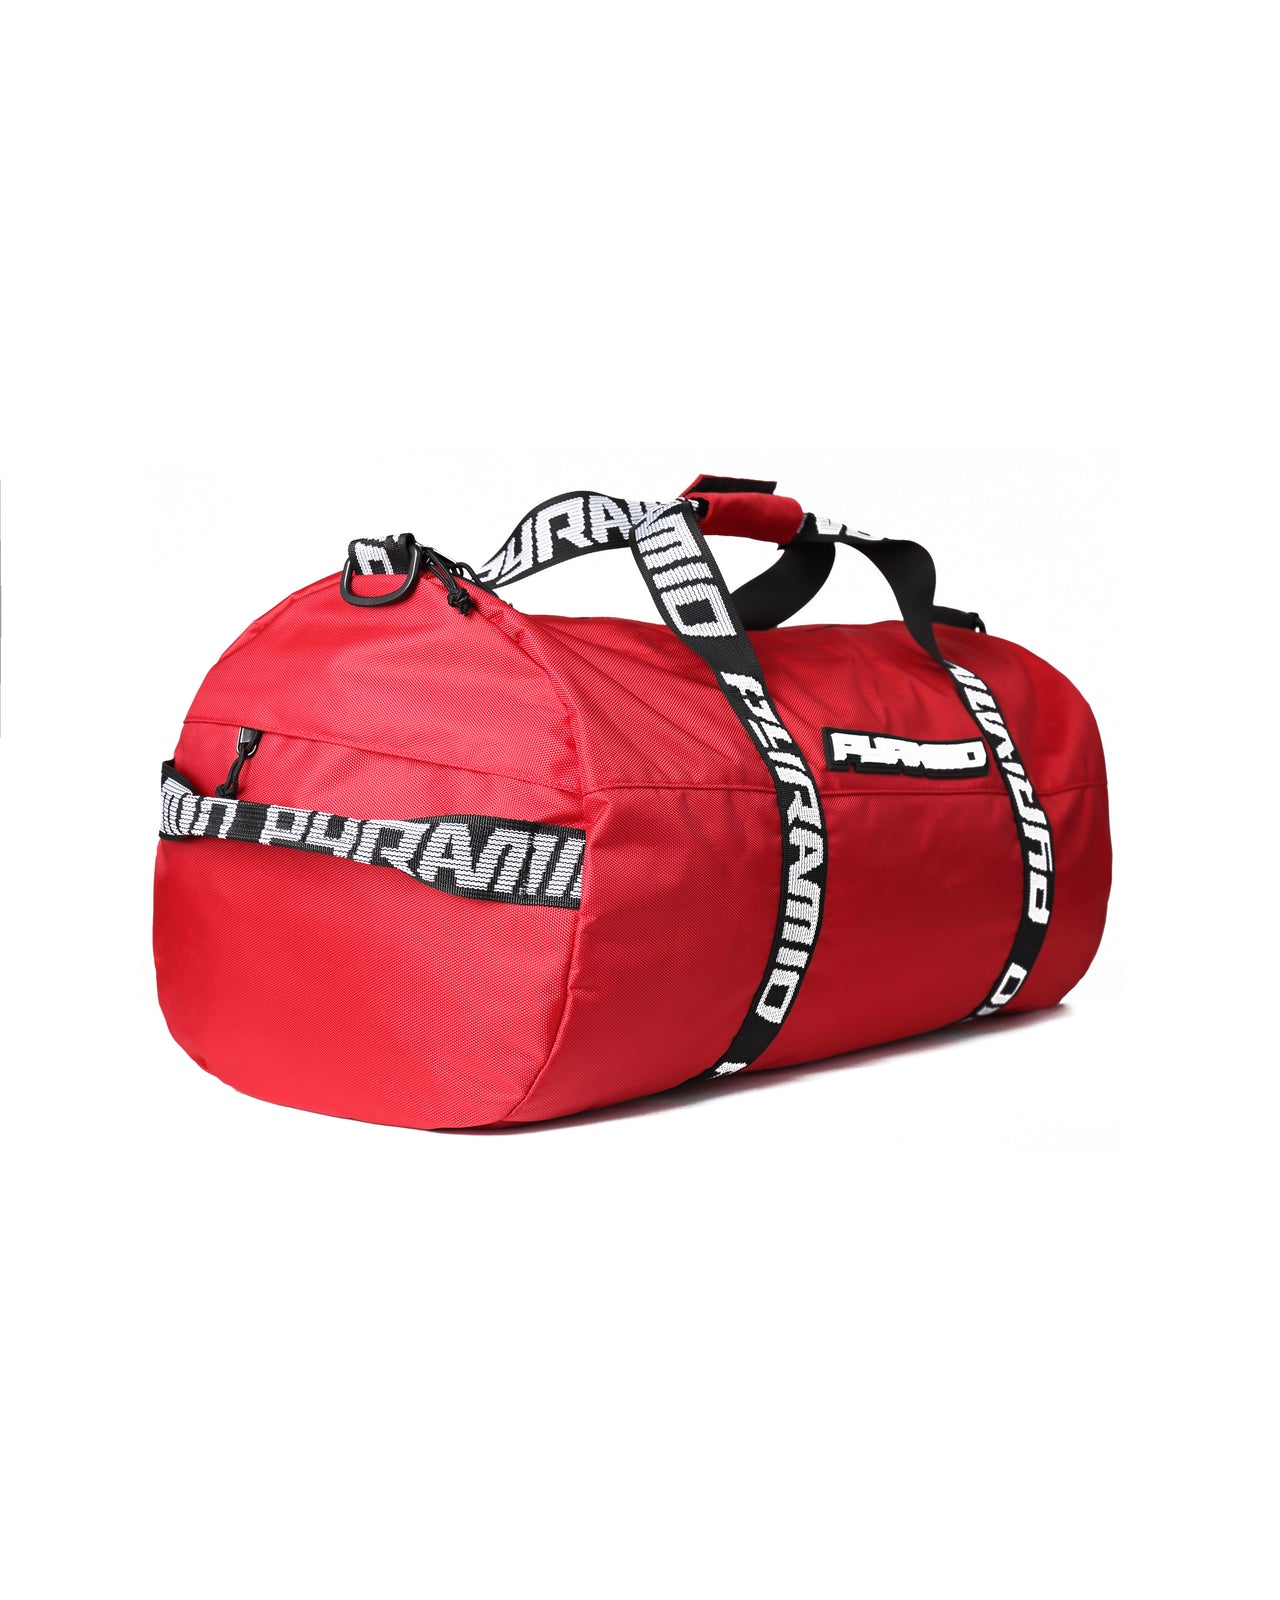 PYRAMID DUFFLE BAG - Color: Red